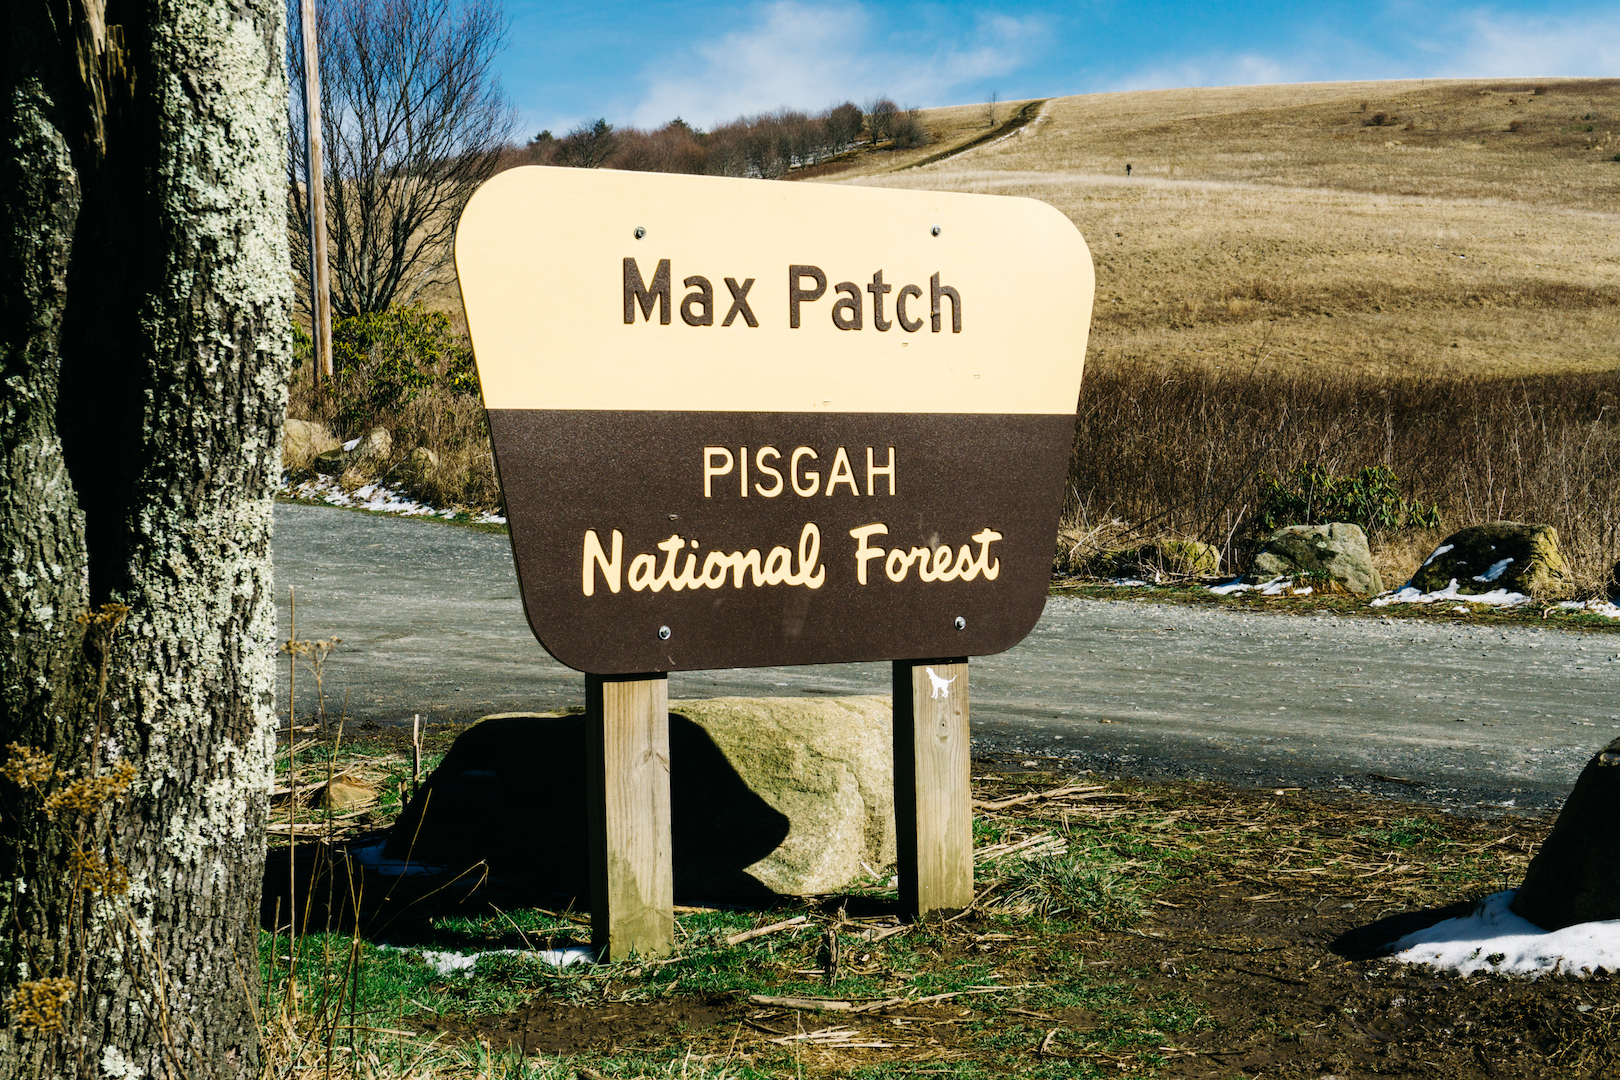 Max Patch Pisgah National Forest